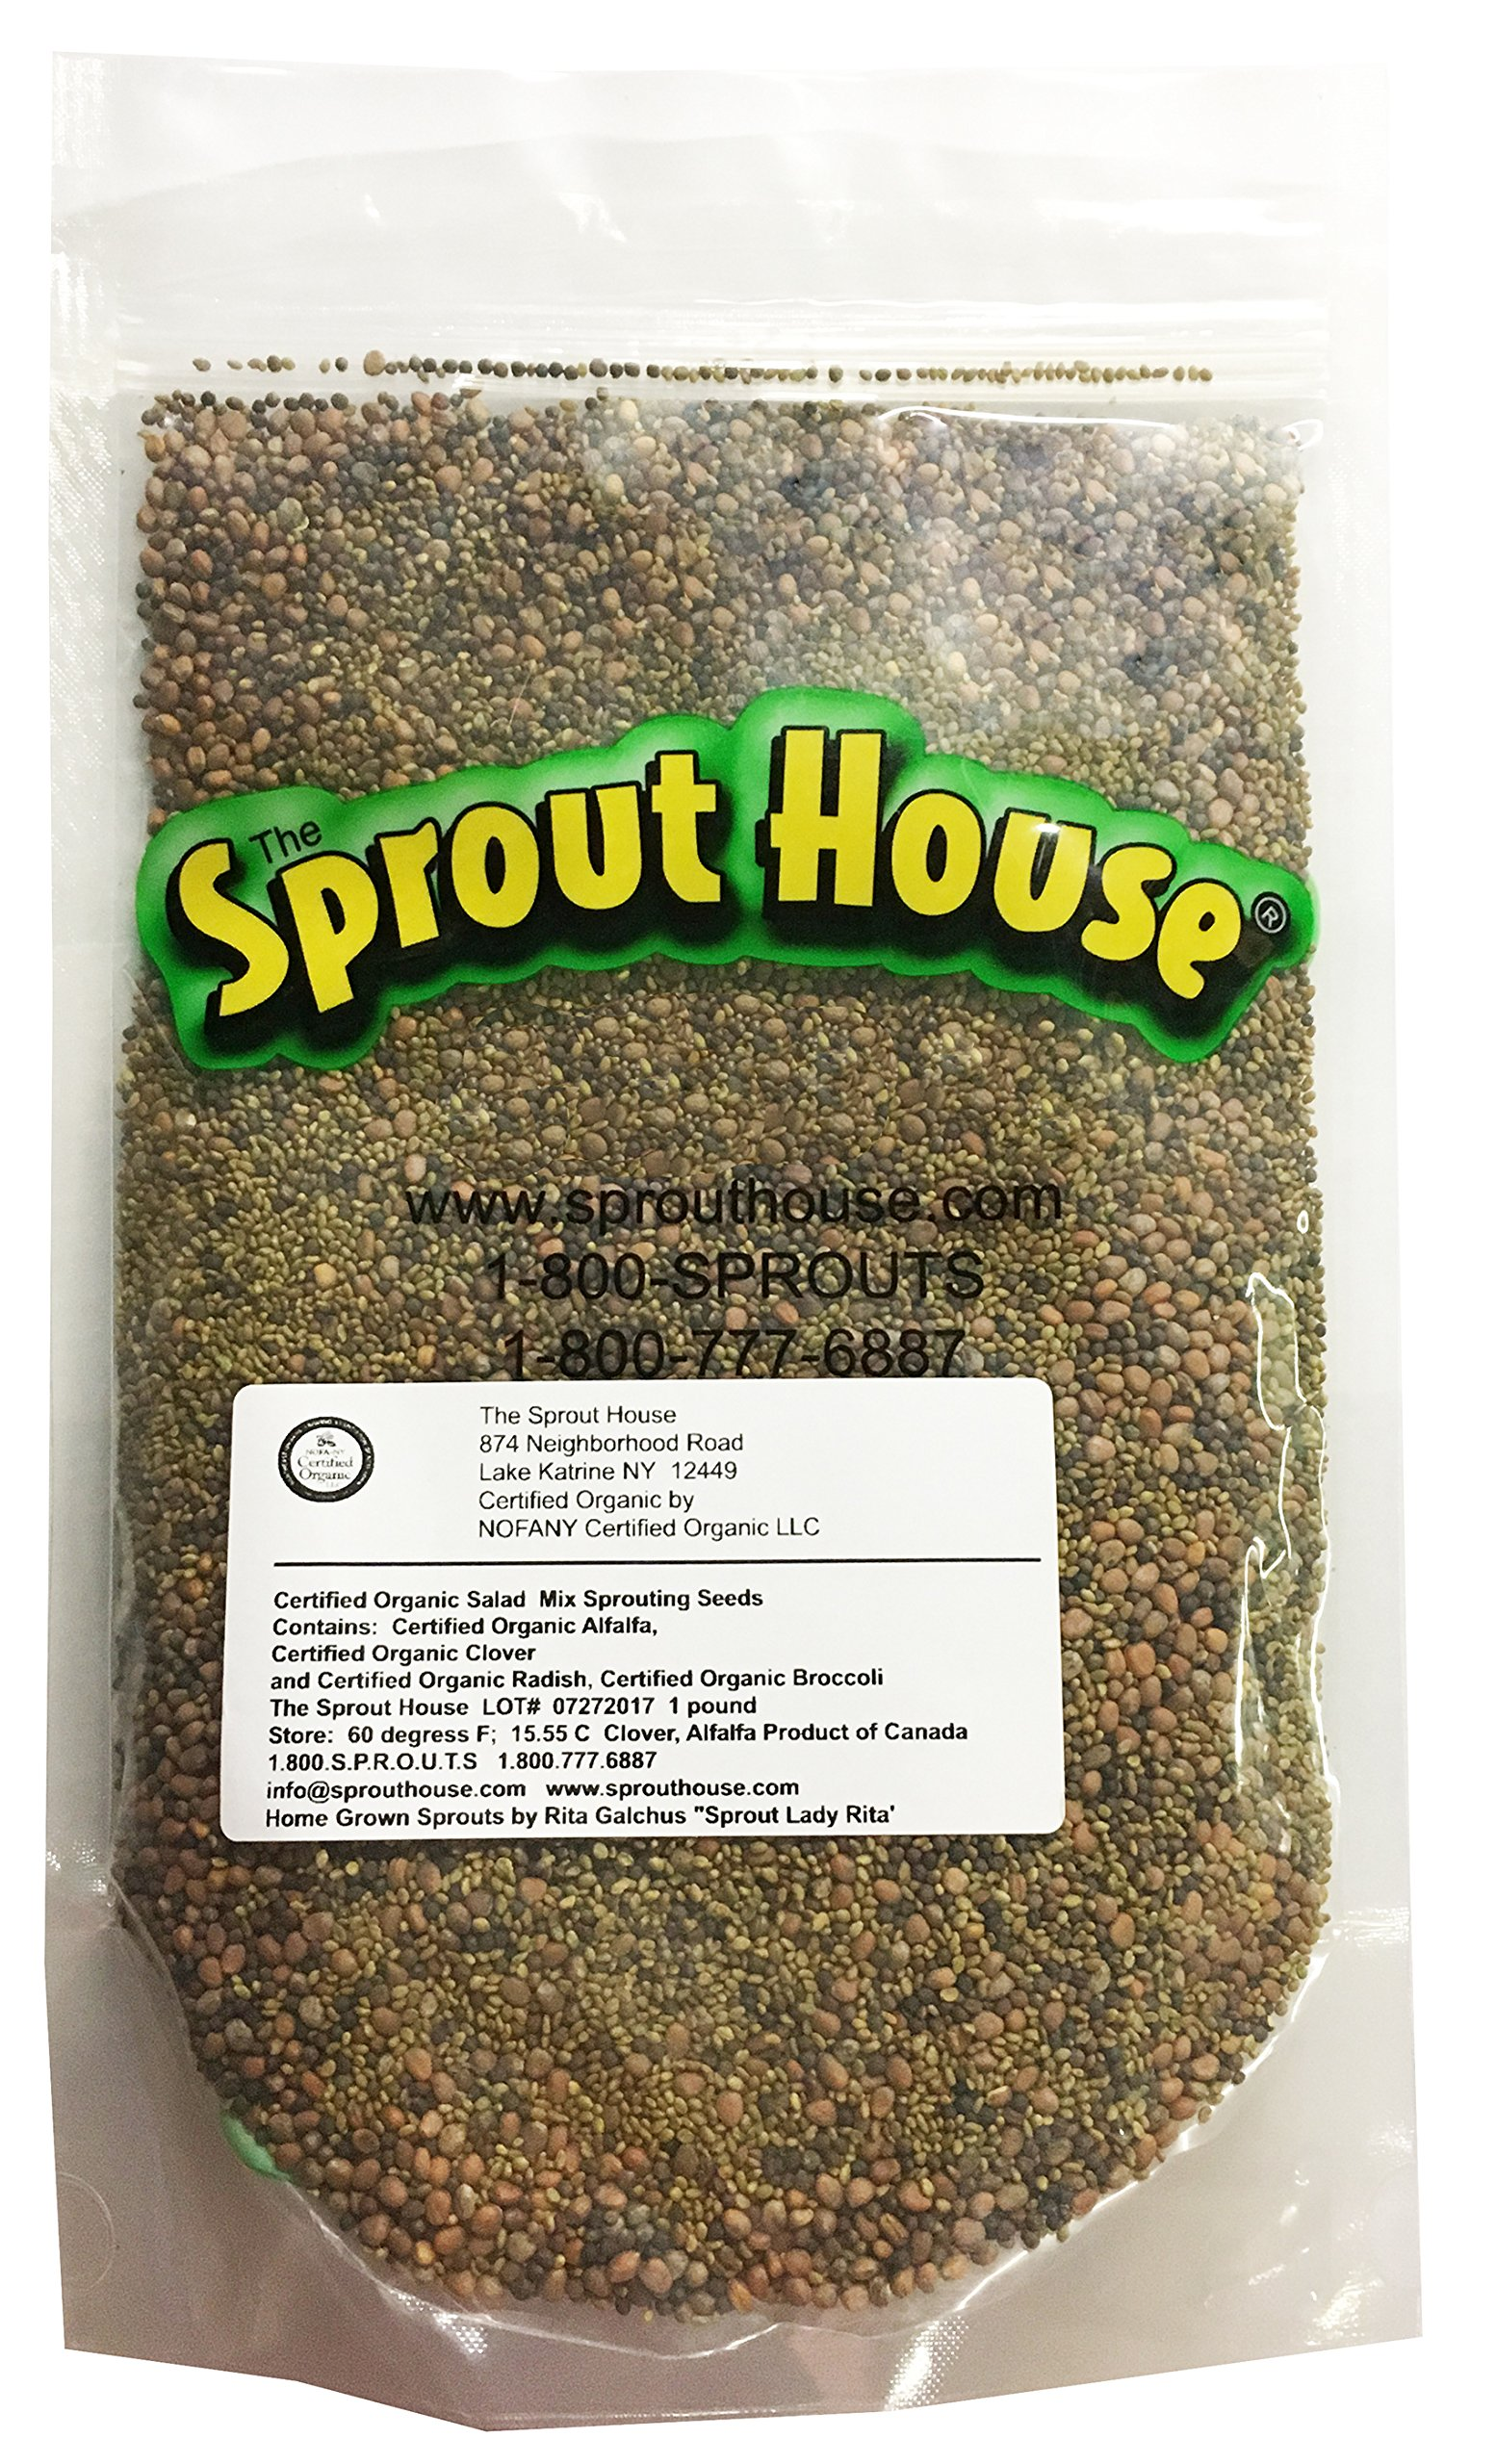 The Sprout House Certified Organic Non-gmo Sprouting Seeds Salad Mix Broccoli, Clover, Radish, Alfalfa 1 Pound